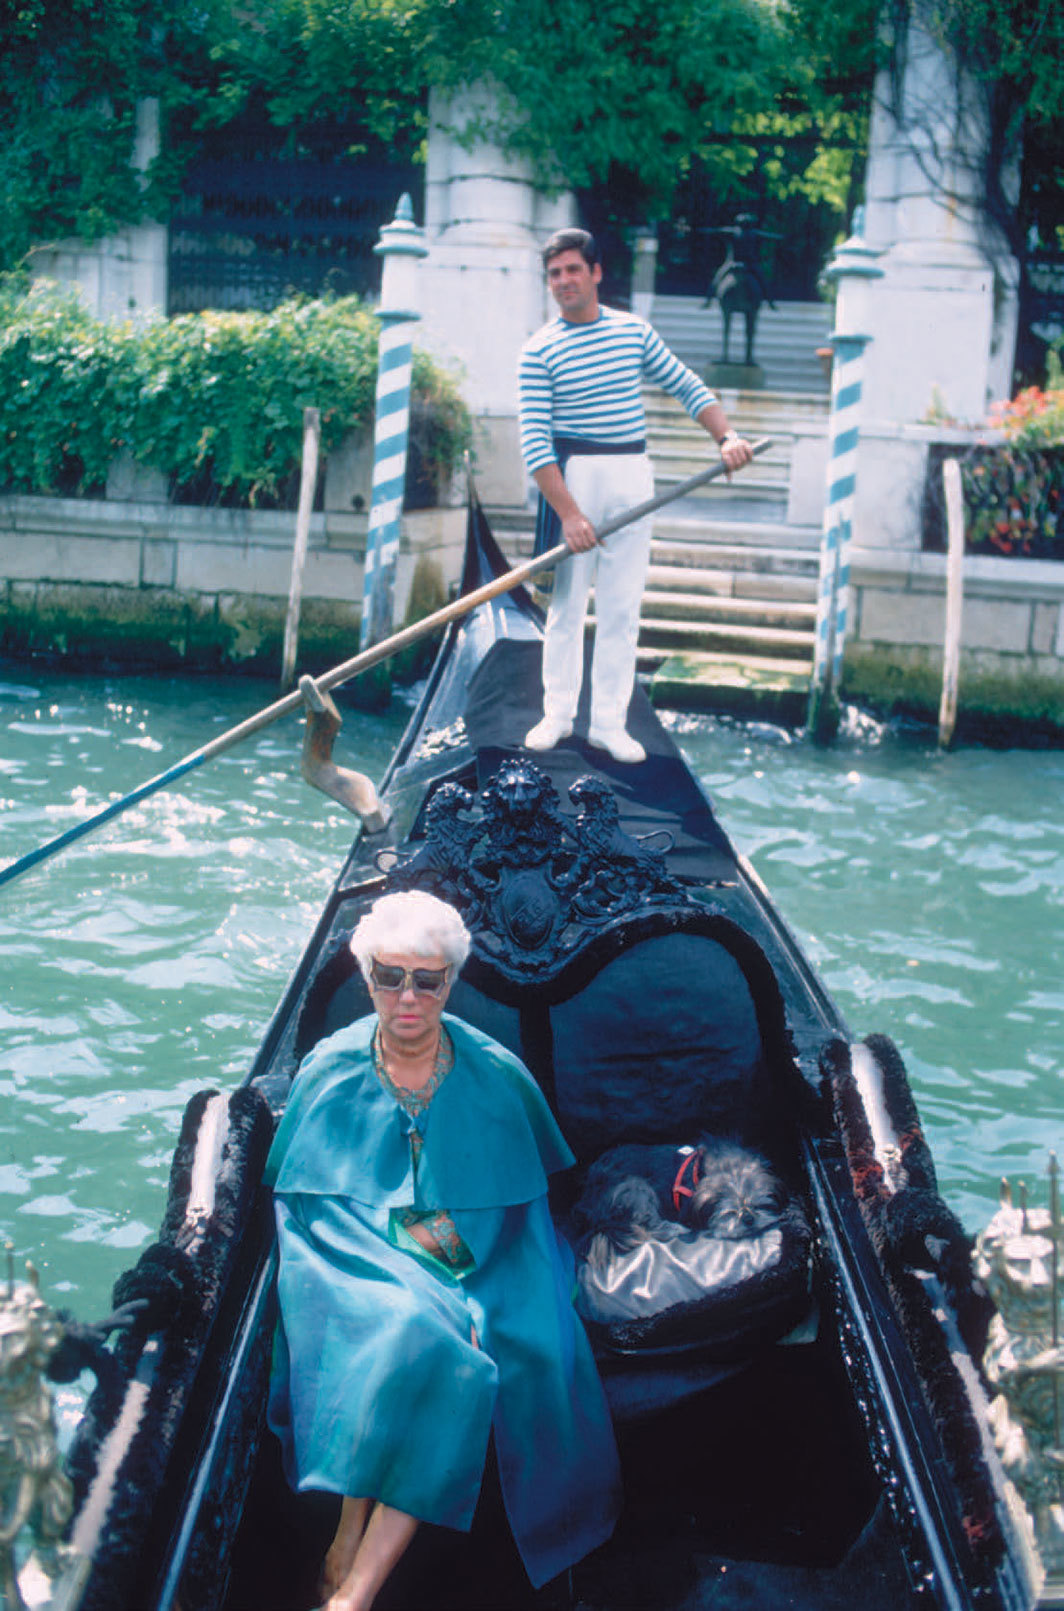 *Peggy Guggenheim outside the Peggy Guggenheim Collection, Venice, 1968.* Photo: Tony Vaccaro/Hulton Archive/Getty Images.